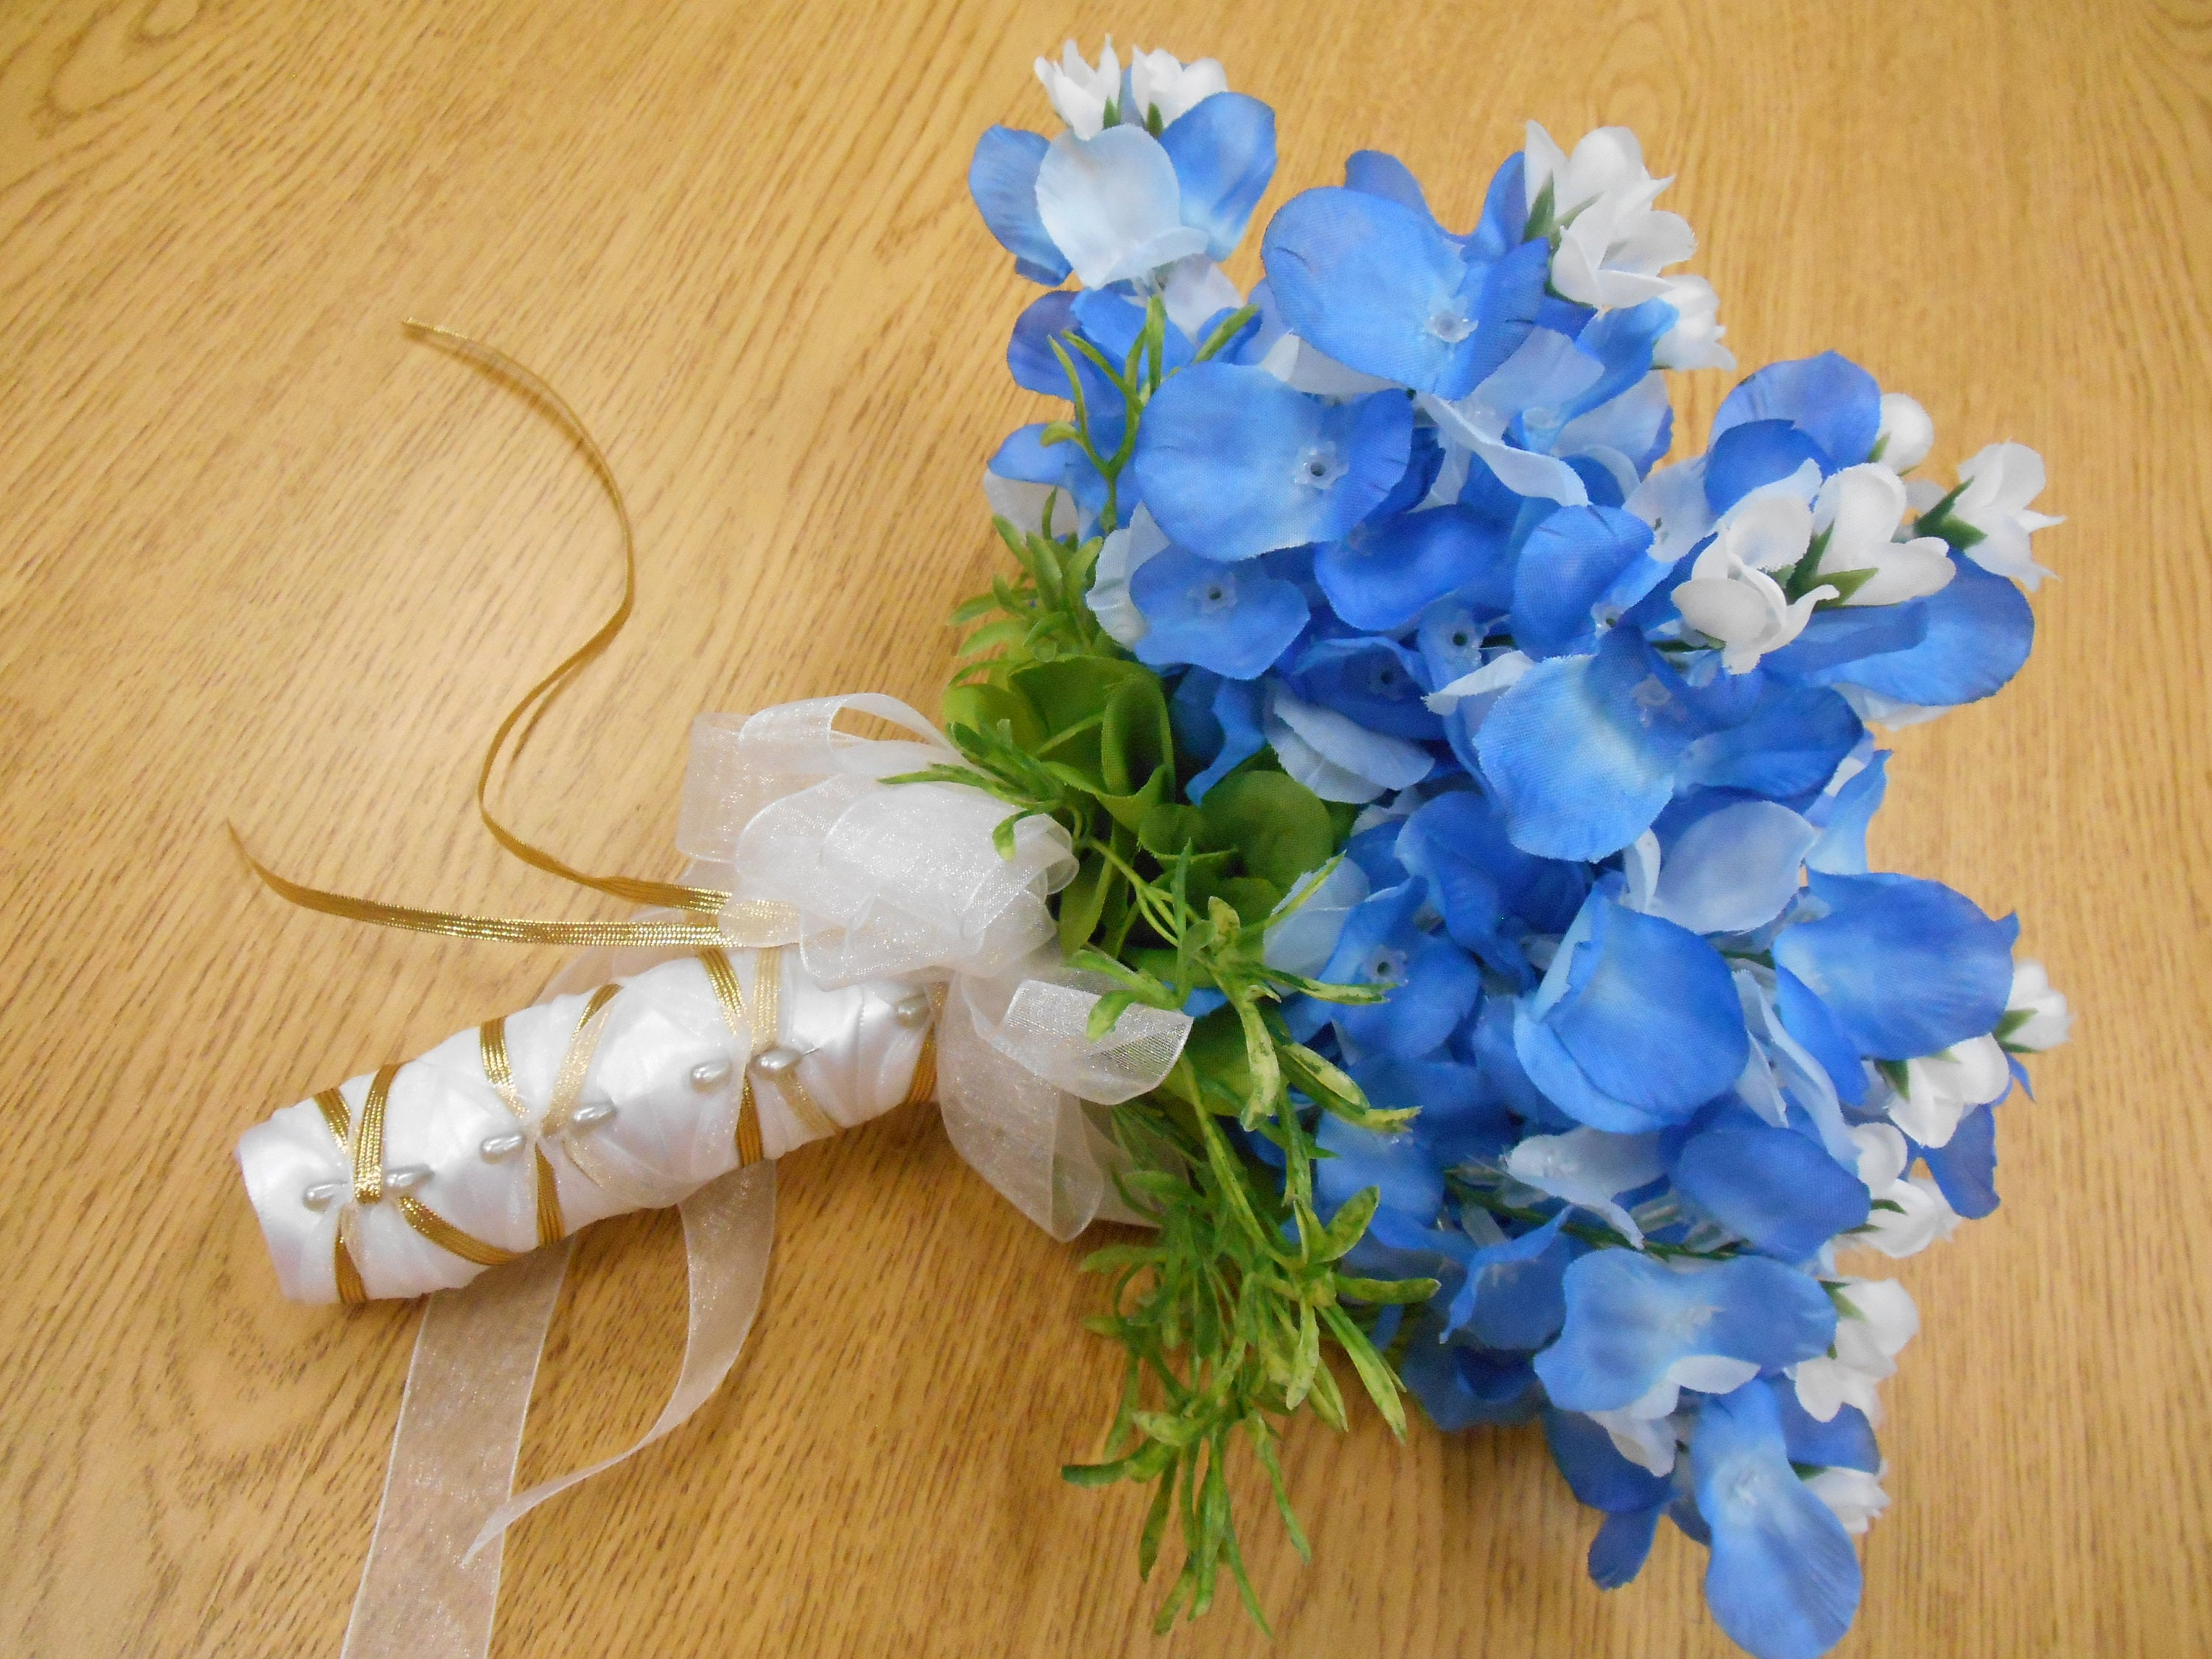 Texas blue bonnet silk bridesmaid bouquet bridal silk flowers free texas blue bonnet silk bridesmaid bouquet bridal silk flowers free matching boutonniere burlap and lace gold white blue izmirmasajfo